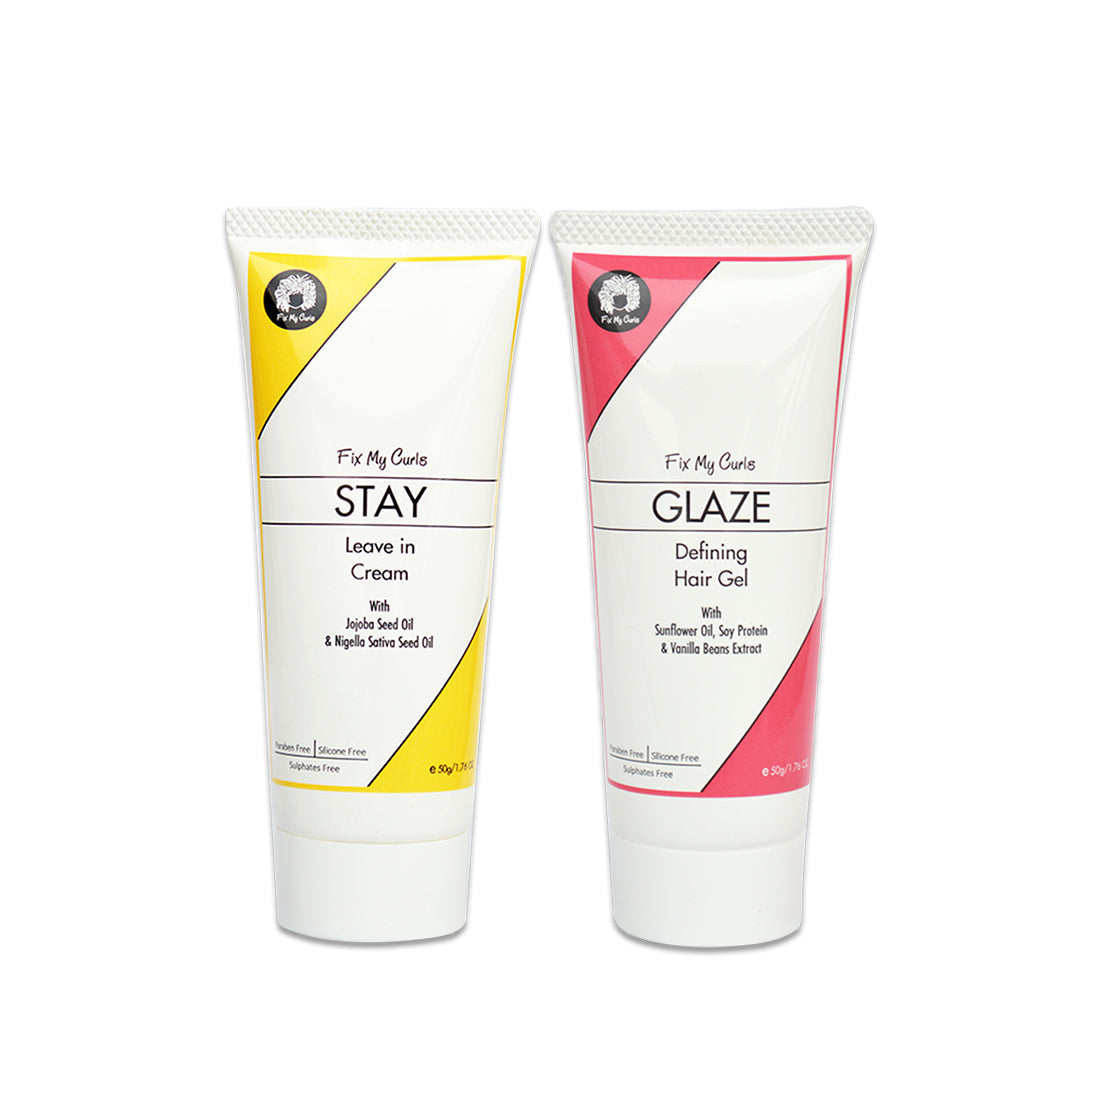 Fix My Curls Travel Size Styling Bundle with Glaze Hair Gel & Stay Leave In Cream 50g Each